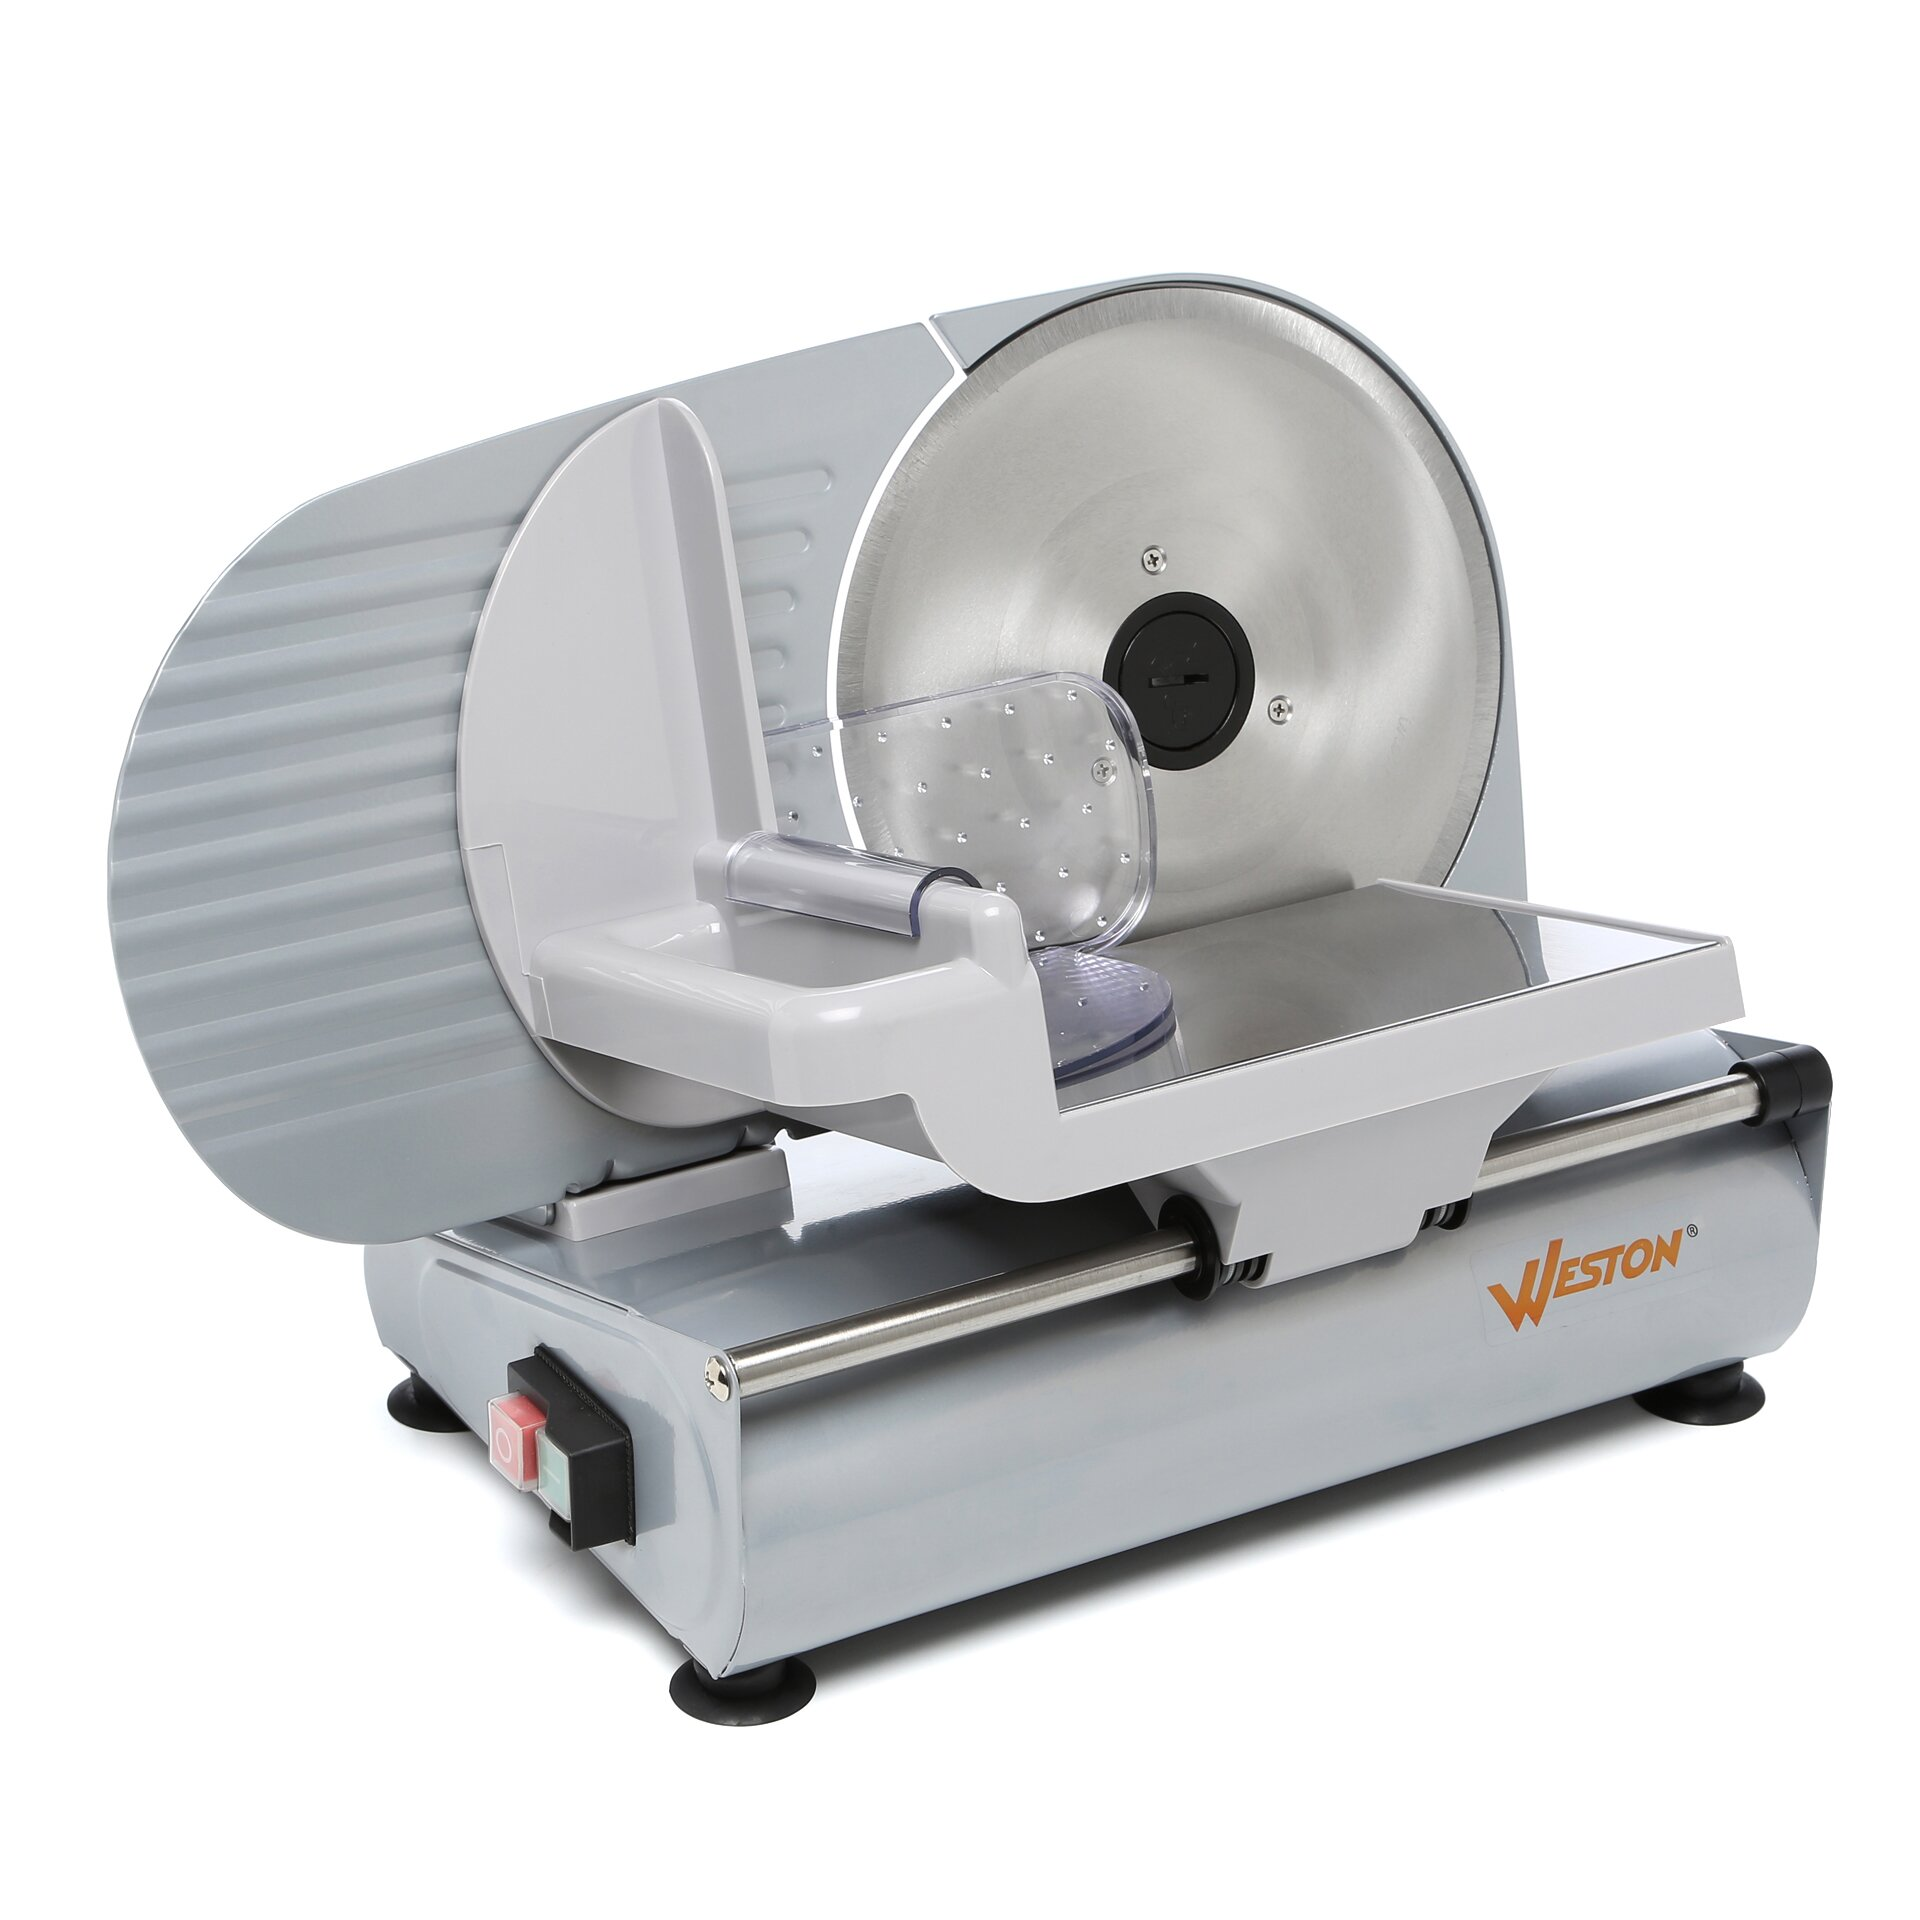 weston 9 inch meat slicer reviews